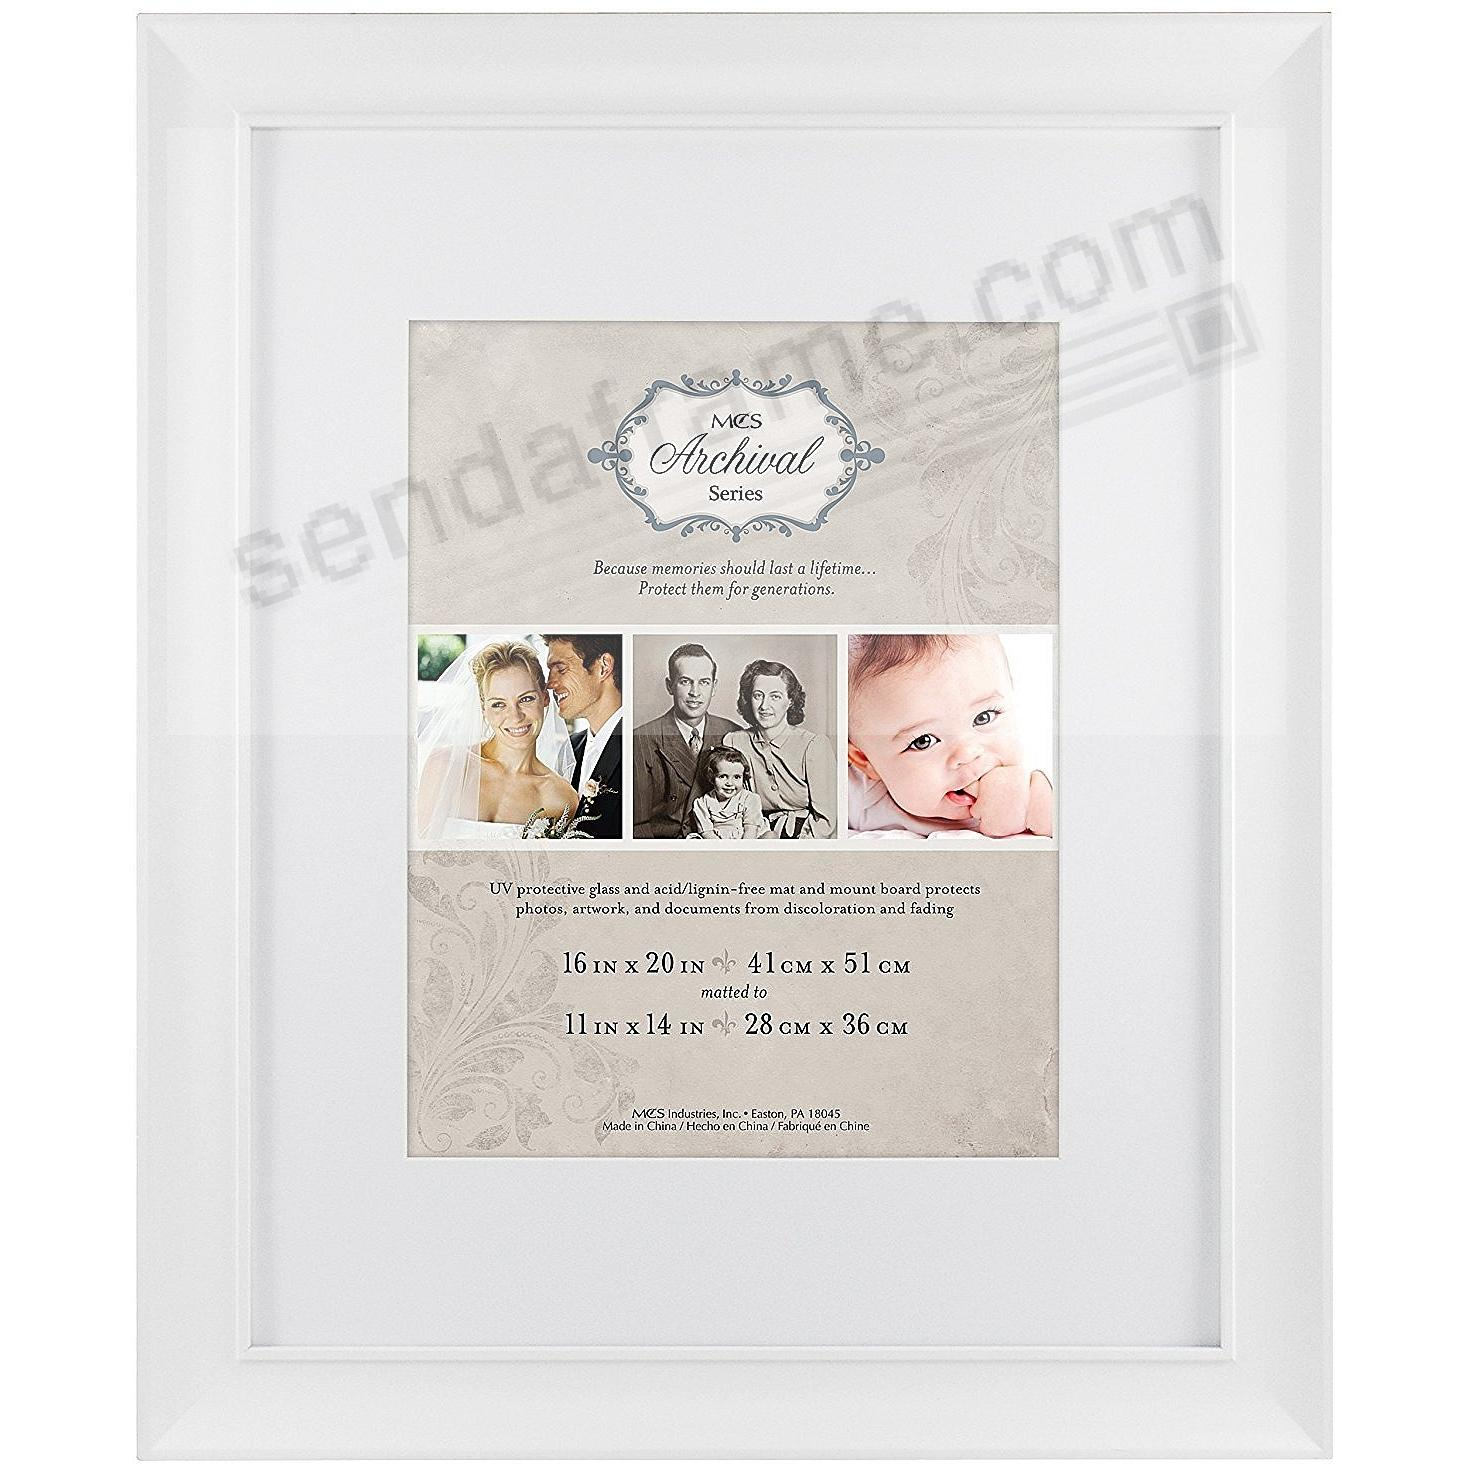 White ARCHIVAL Matted Wood frame 16x20/11x14 by MCS®